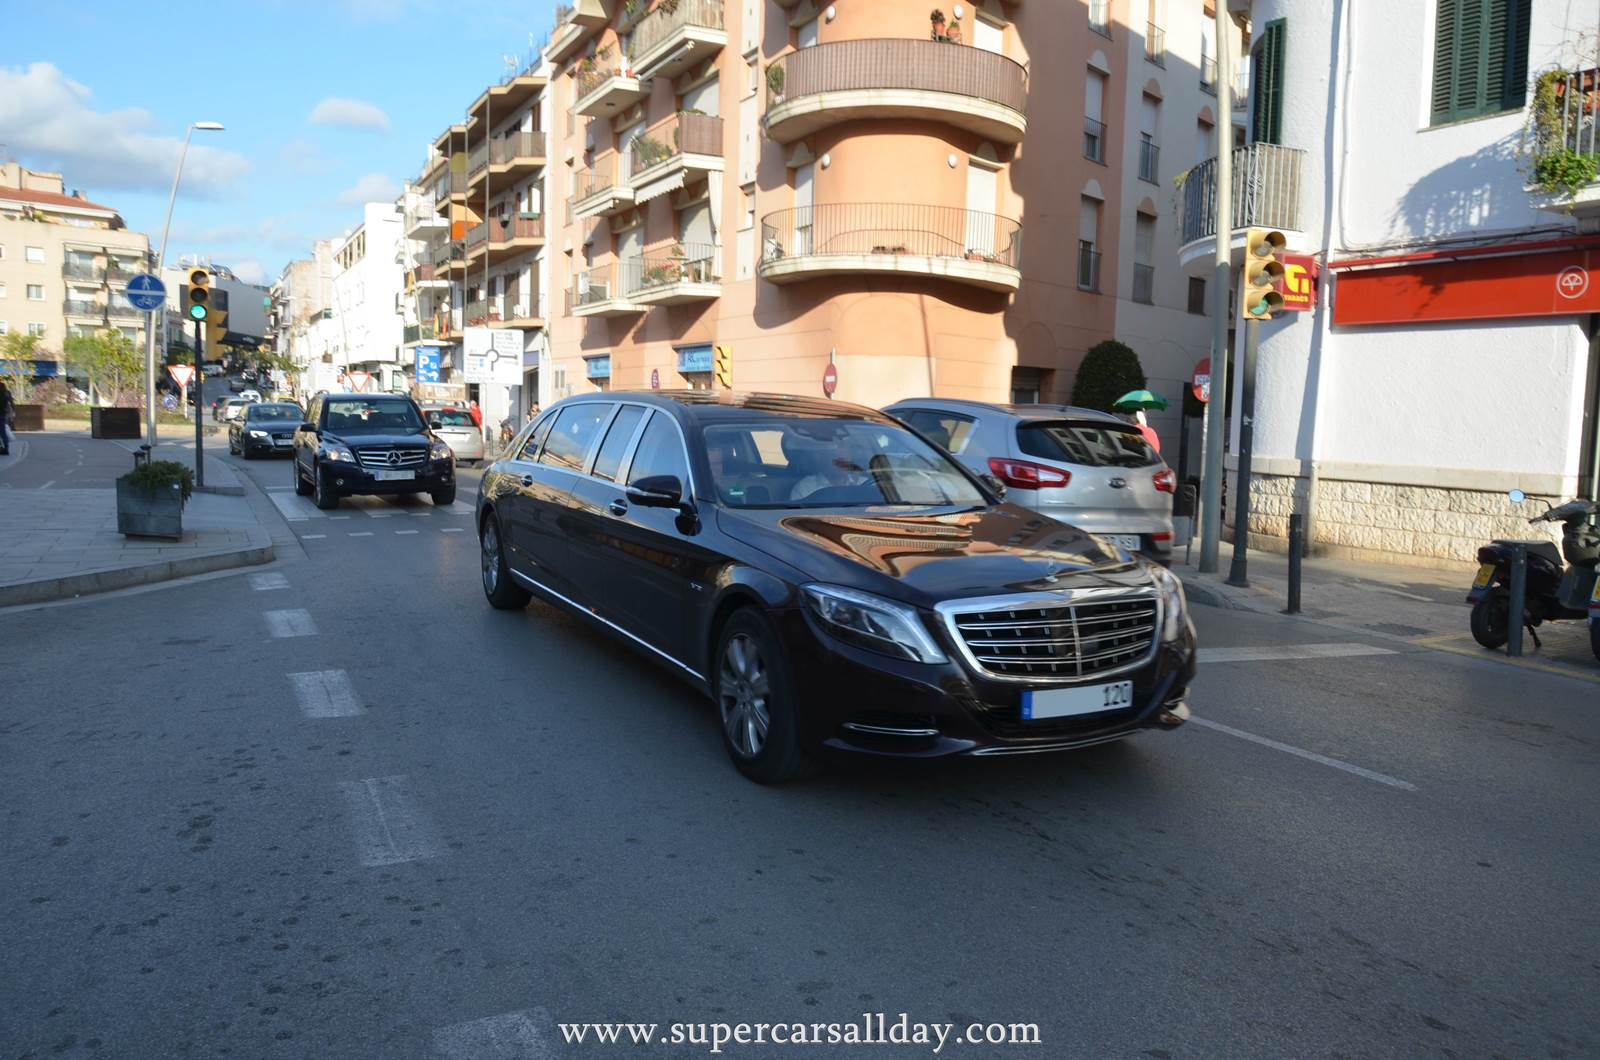 http://supercarsallday.com/wp-content/uploads/2016-Mercedes-Maybach-Pullman-3.jpg